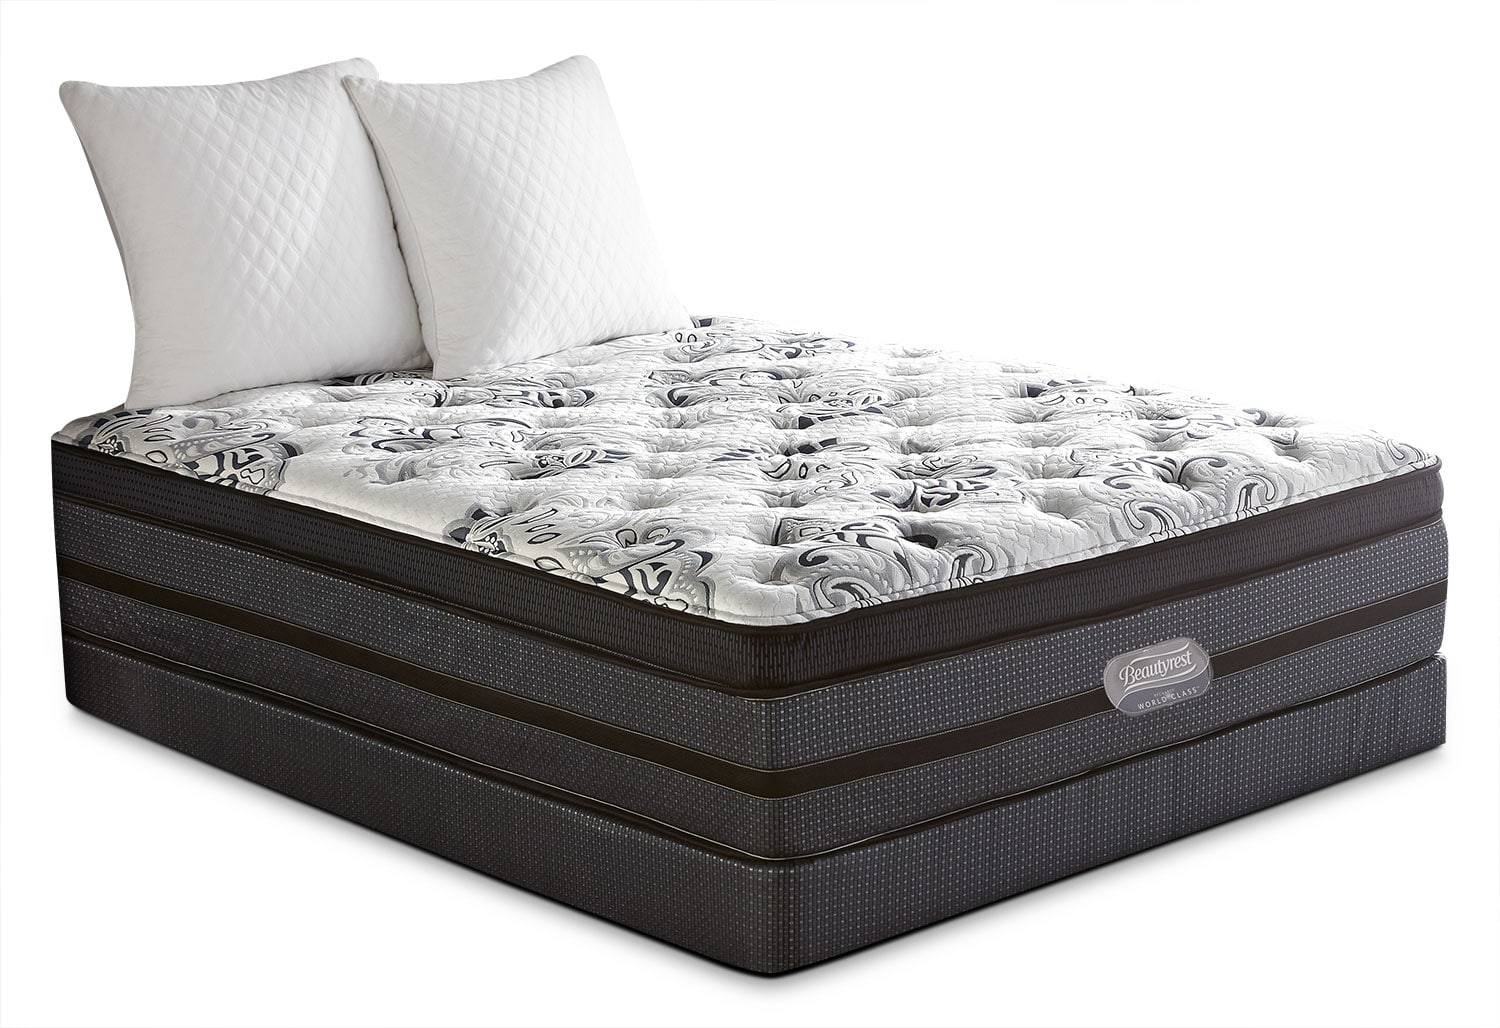 Mattresses and Bedding - Simmons Beautyrest® World Class Paxson Comfort-Top Firm Queen Mattress Set